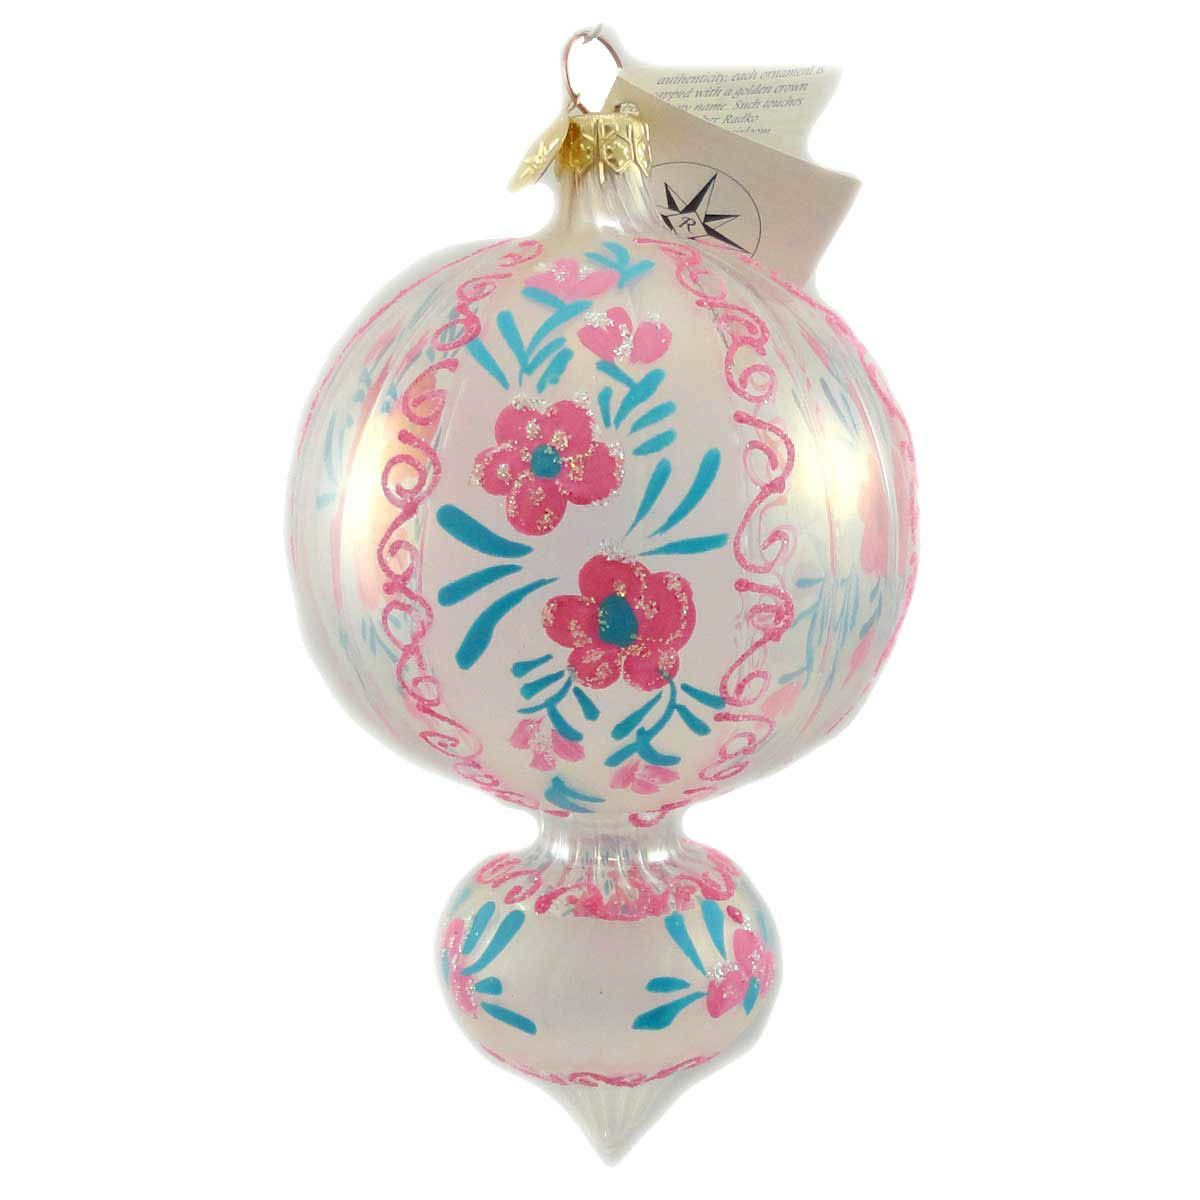 Christopher Radko Flower Frost Glass Ornament | Frosted glass ...